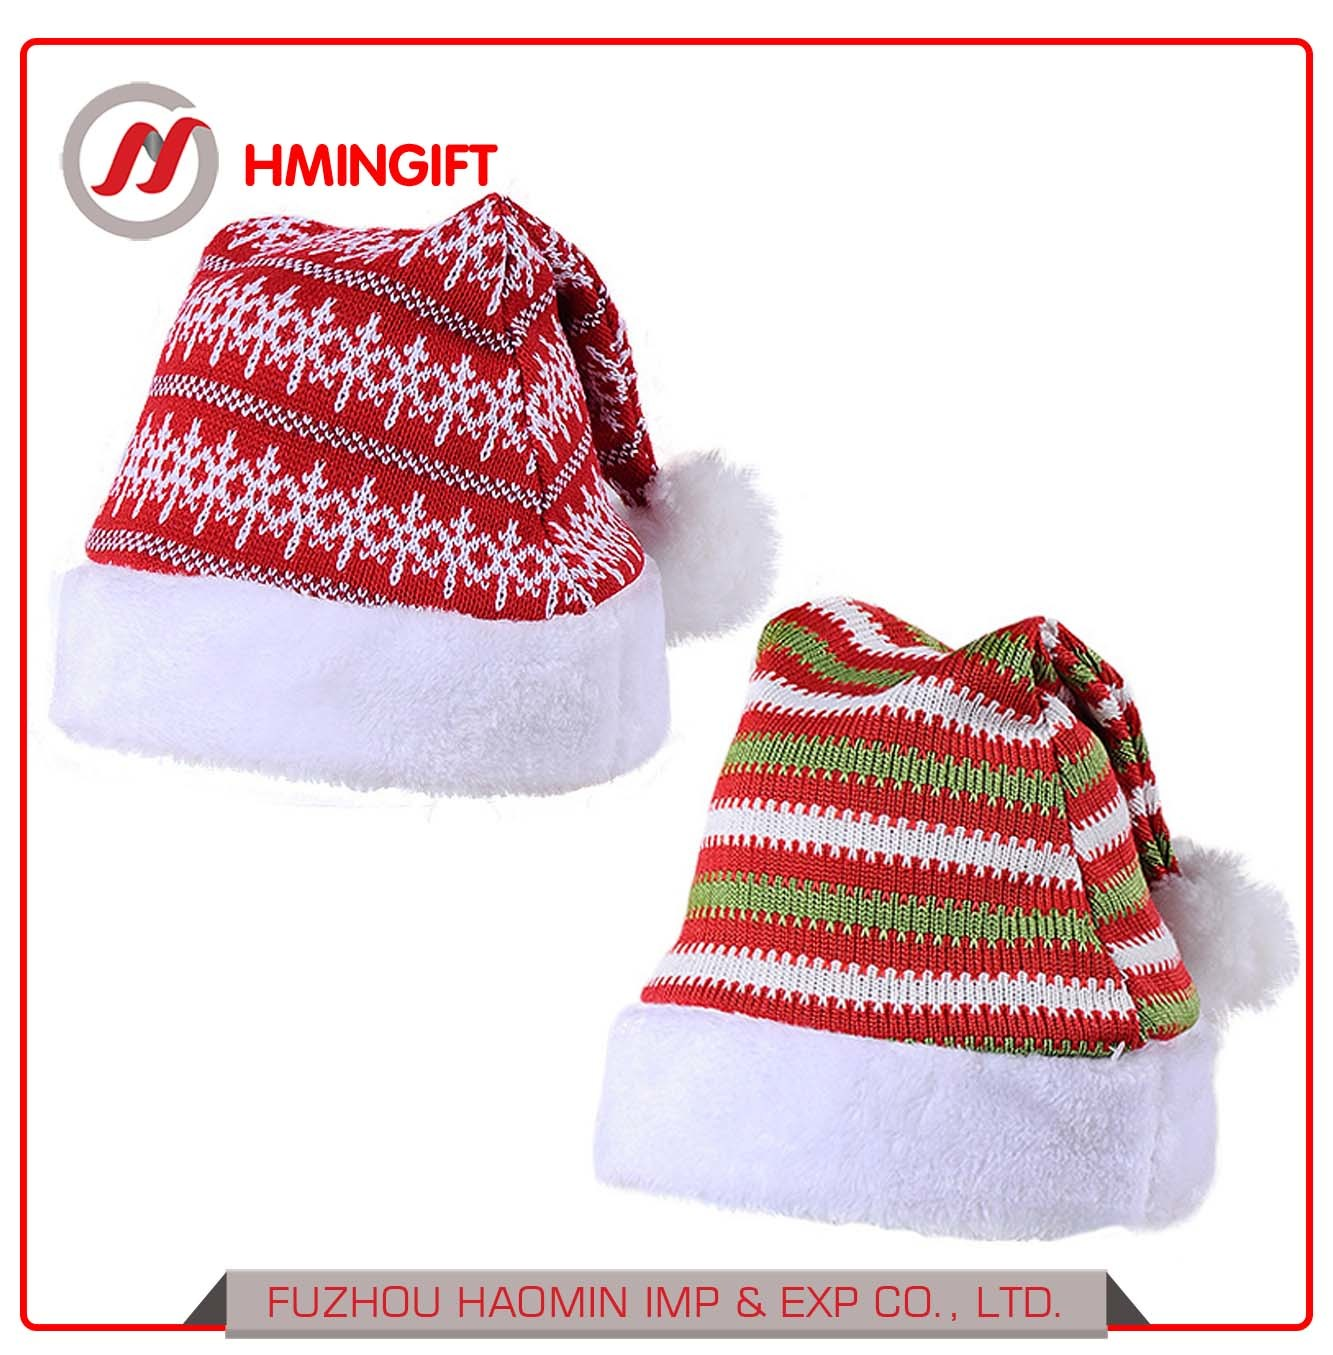 China Customized High Quality Christmas Hats Knitted Adult Santa Hats  Christmas Decorations Christmas Hats Manufacturers - China Christmas Hat 8b5b57c650e